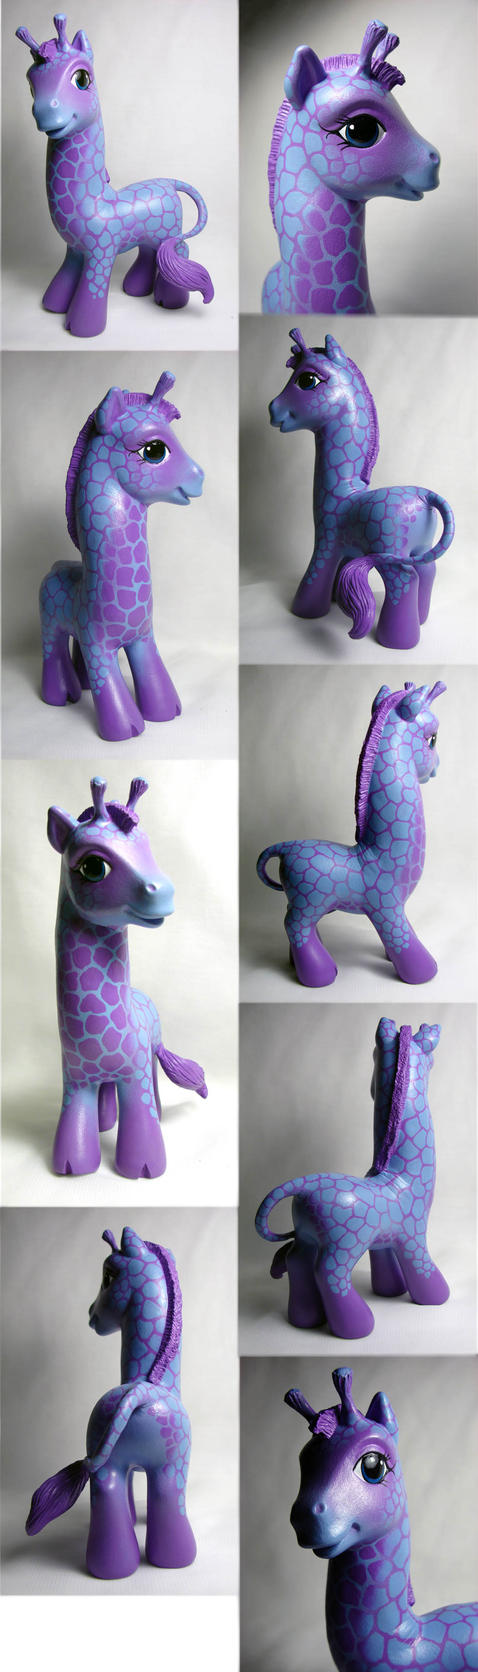 Giraffe custom little pony by Woosie